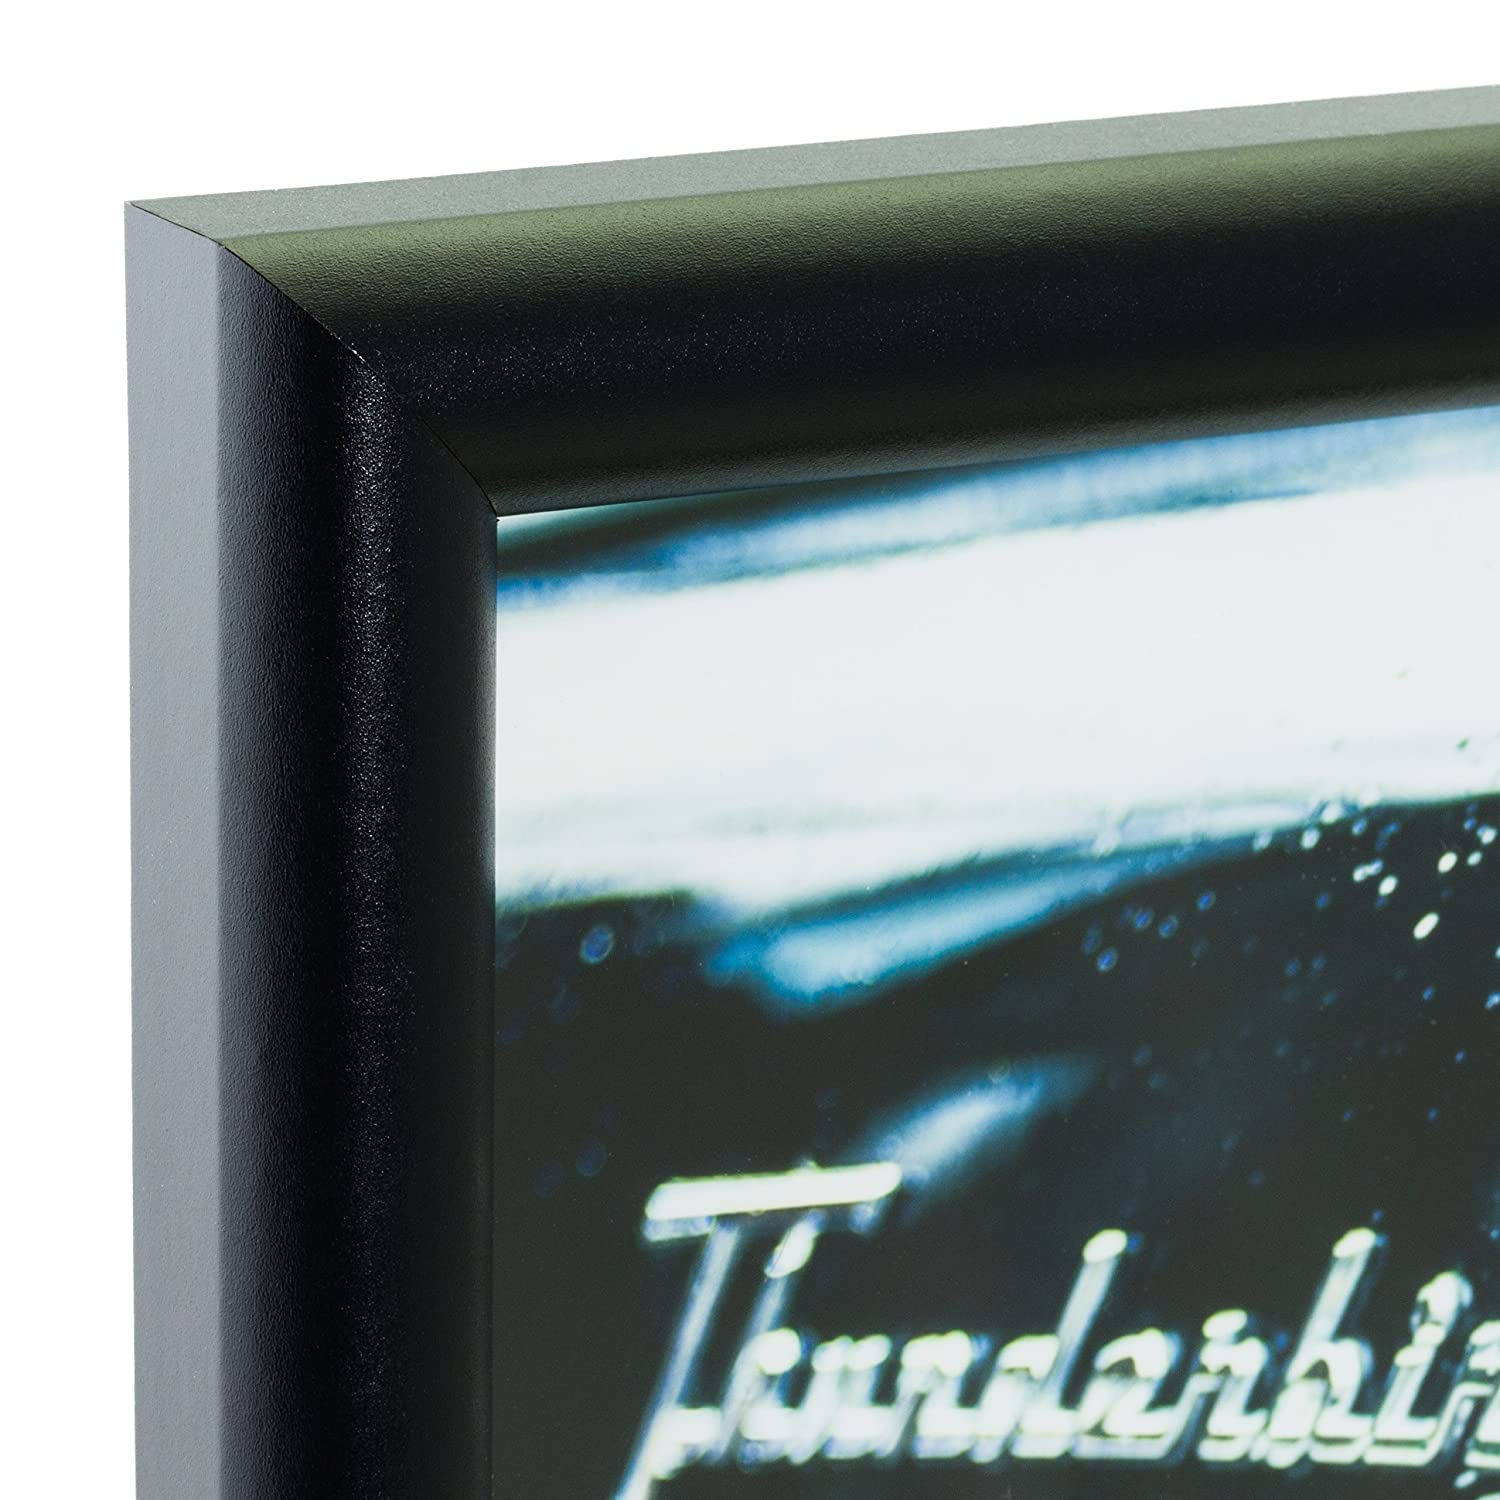 Smooth Finish Black Craig Frames fw2bk 20 by 30-Inch Picture Frame 0.765-Inch Wide